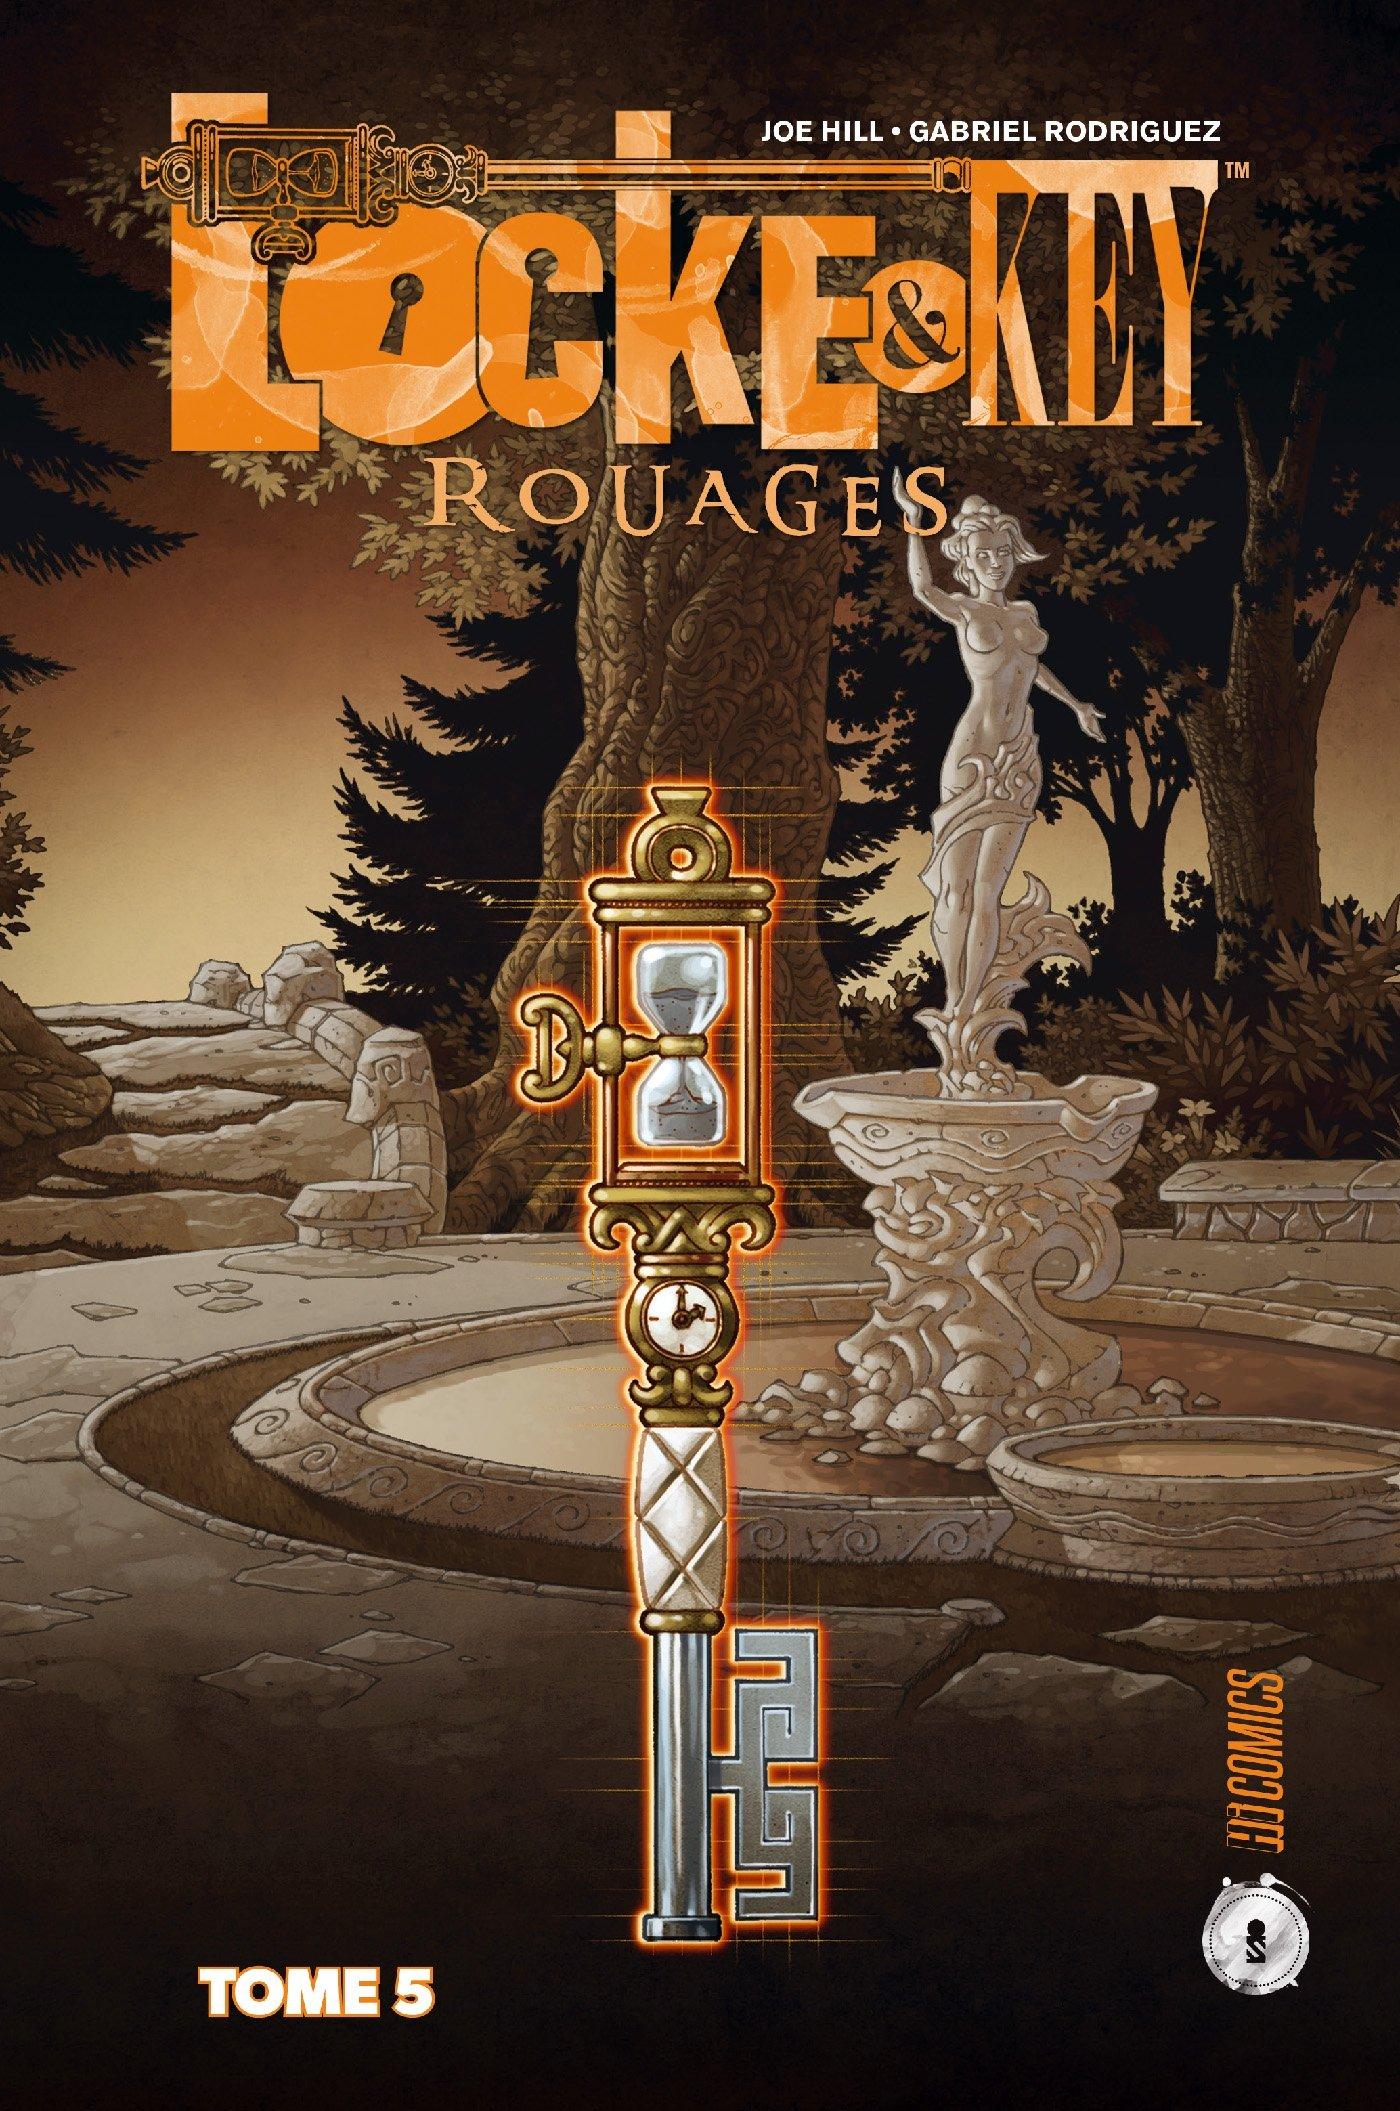 Locke and Key 5 - Rouages